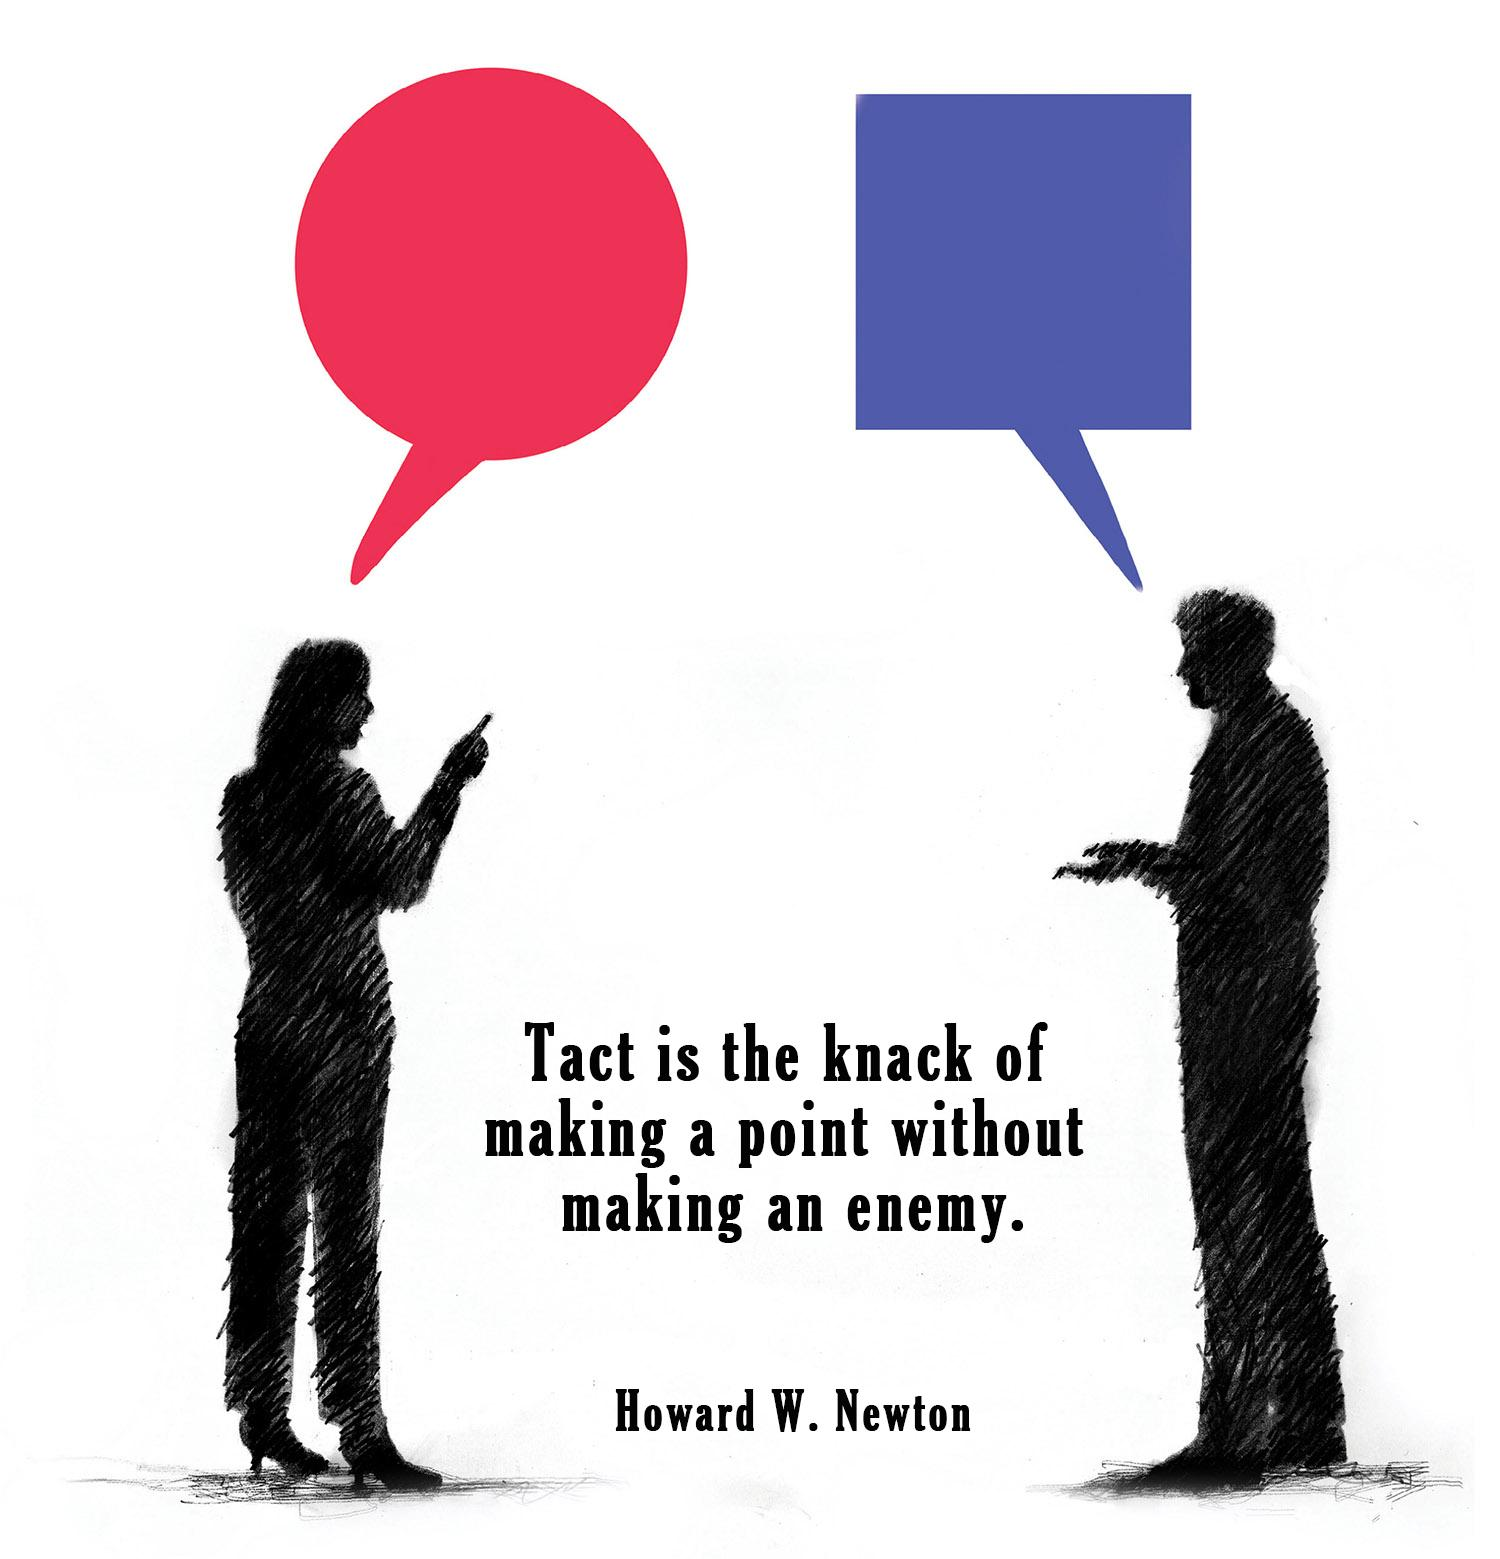 """Tact is the knack of making a point without making an enemy.""—Howard W. Newton [1500×1559] [OC]"